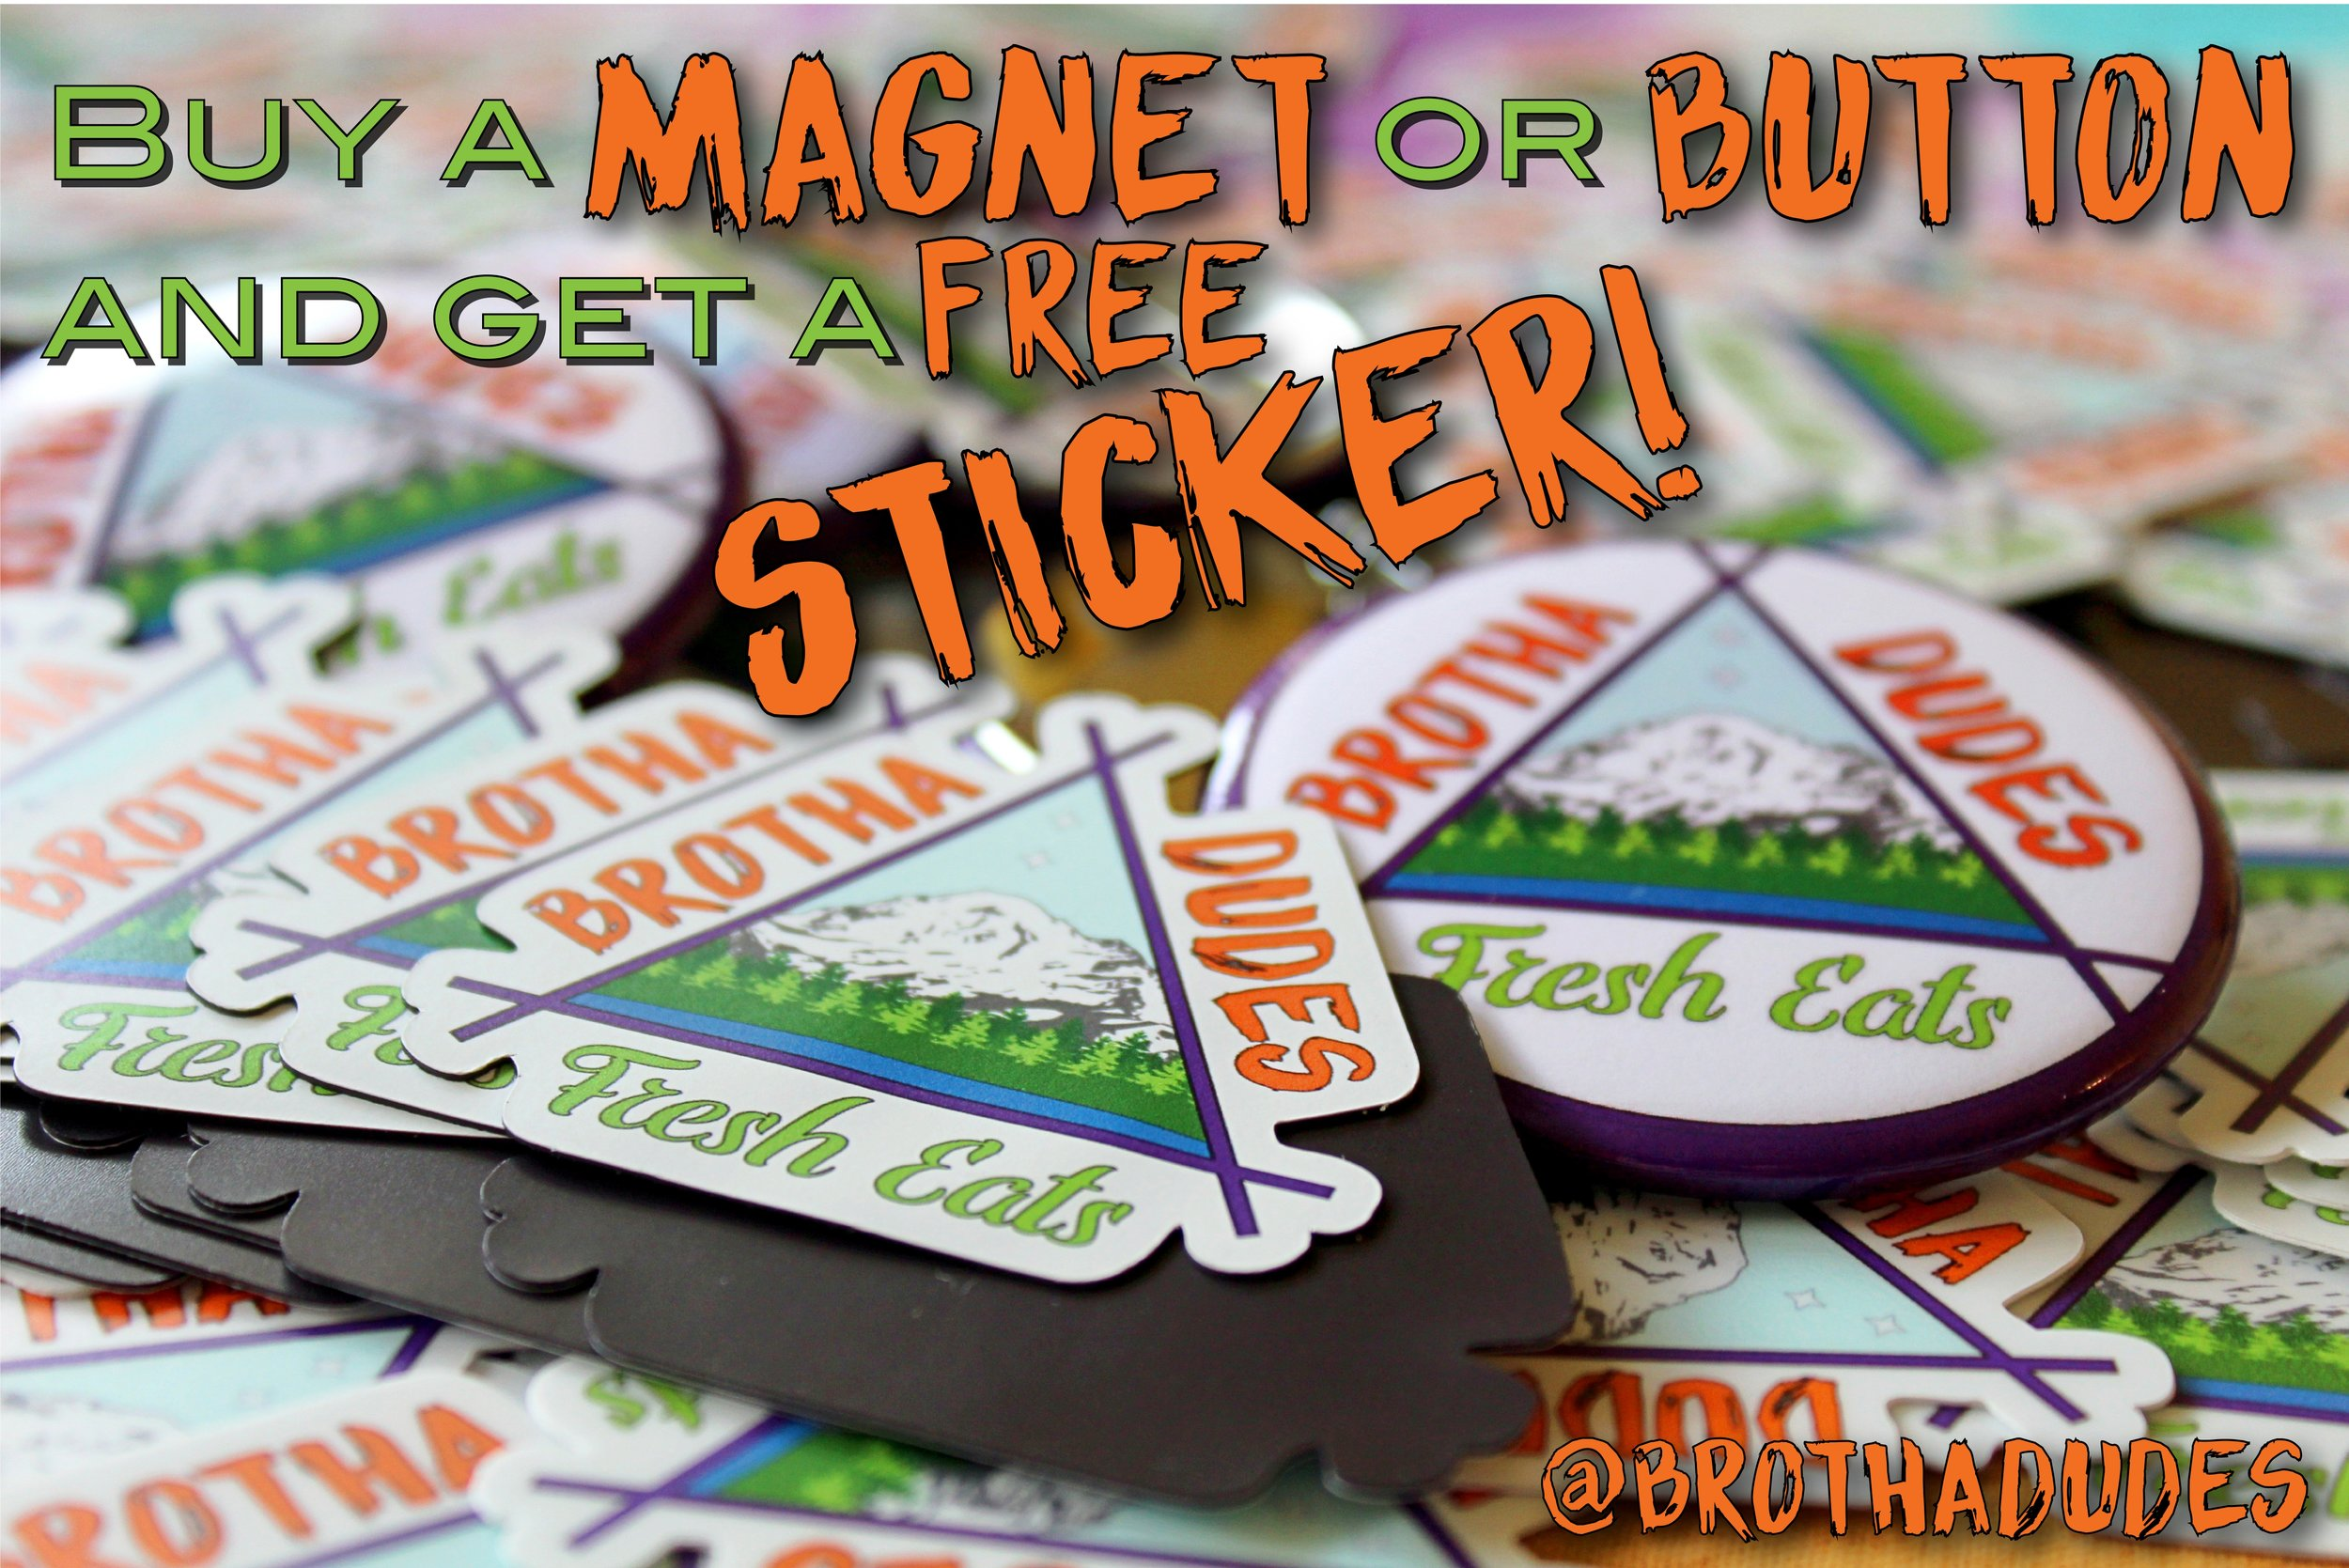 stickers-buttons-magnets ad.jpg